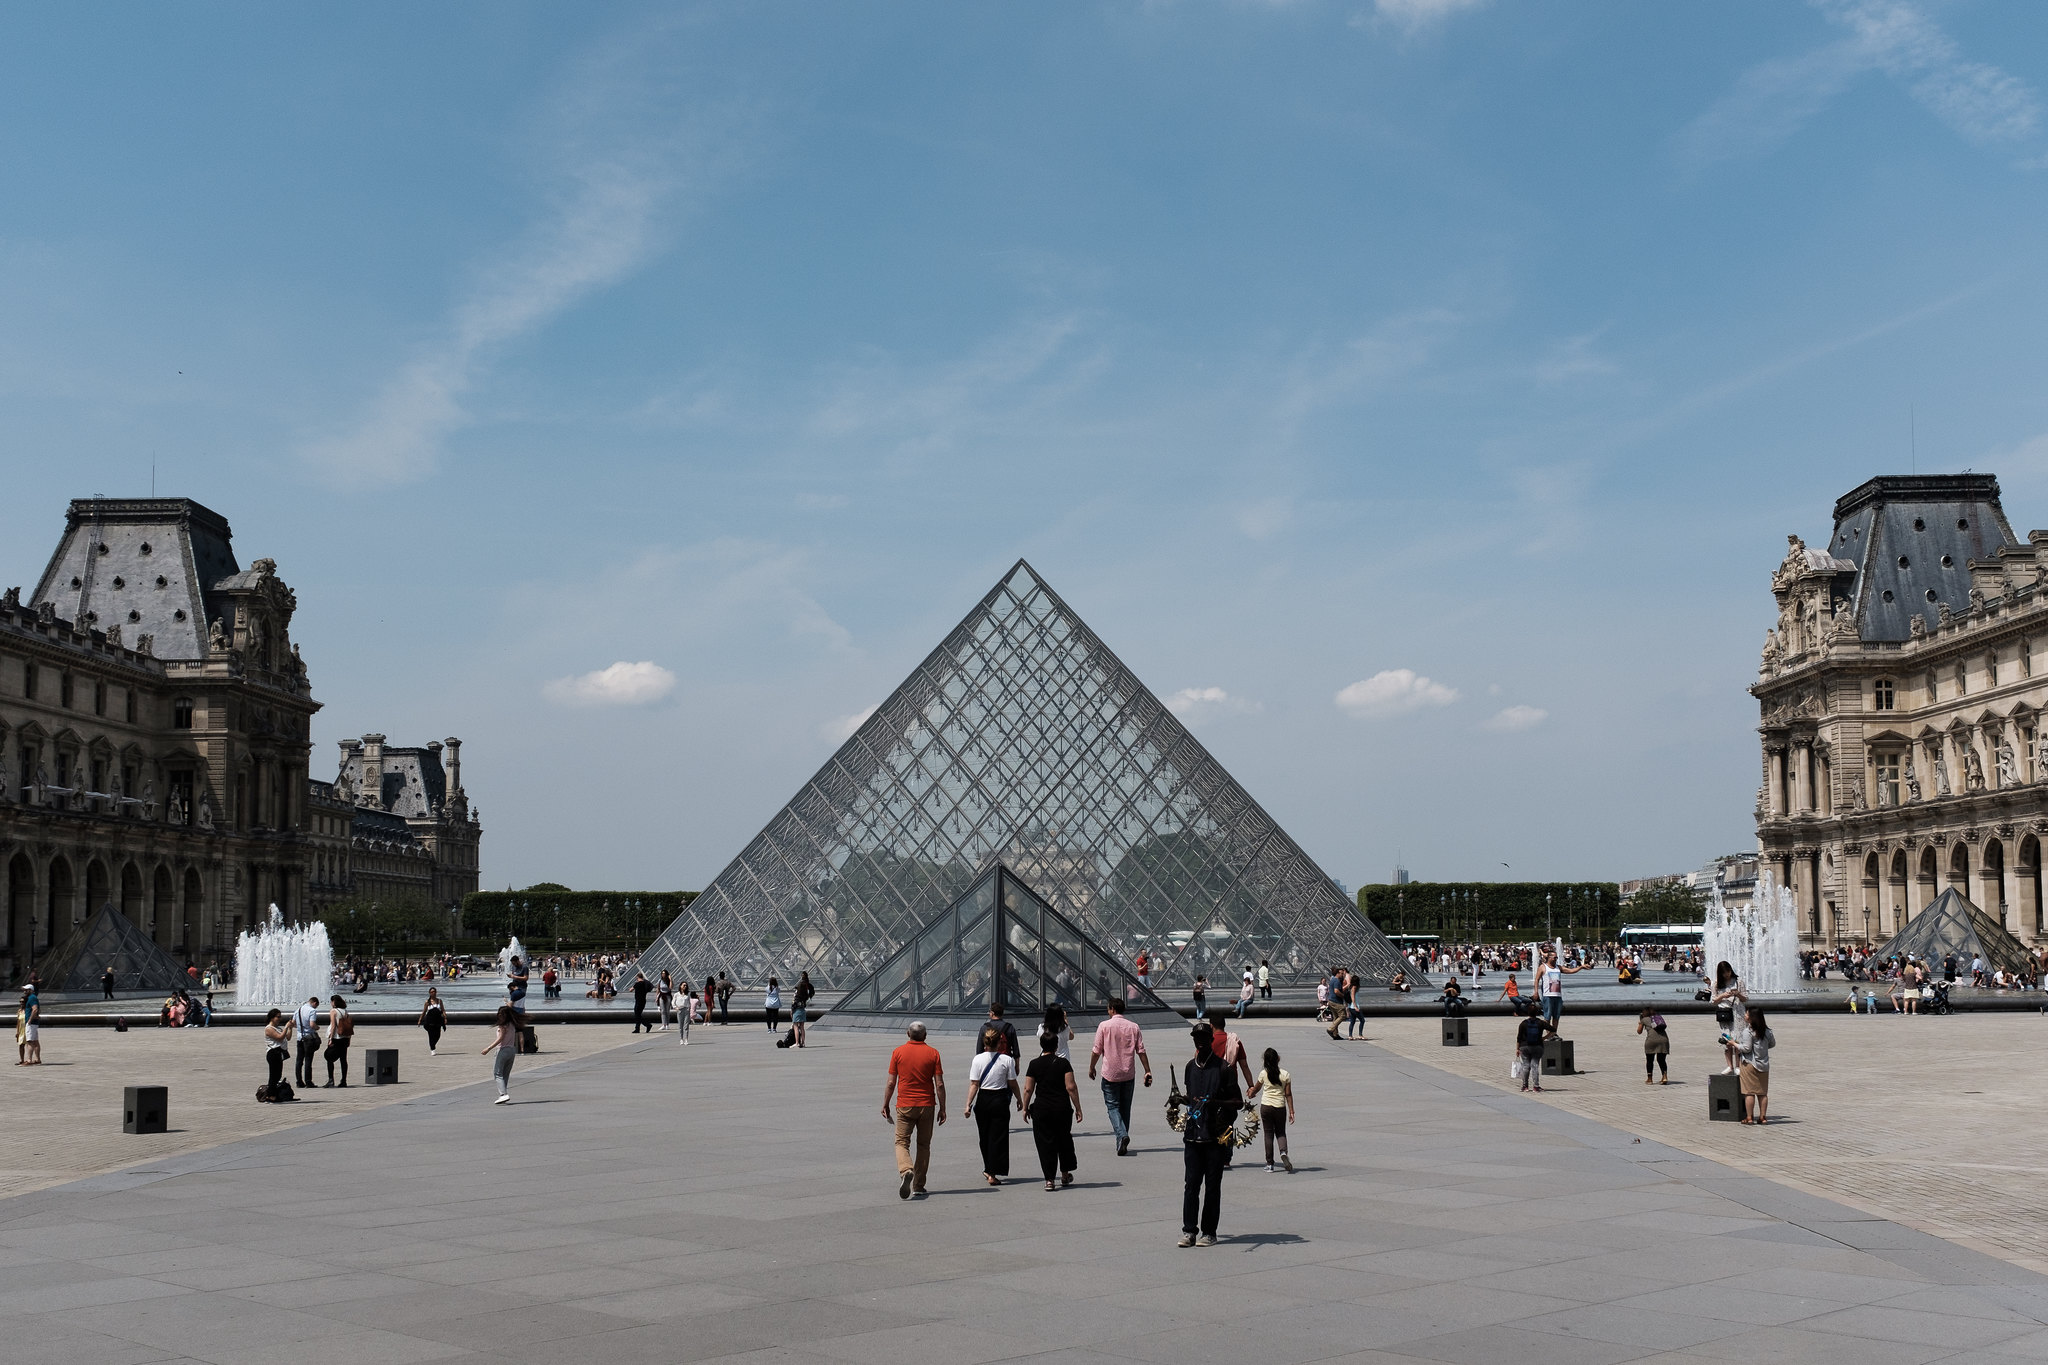 A photo of the Louvre Pyramid